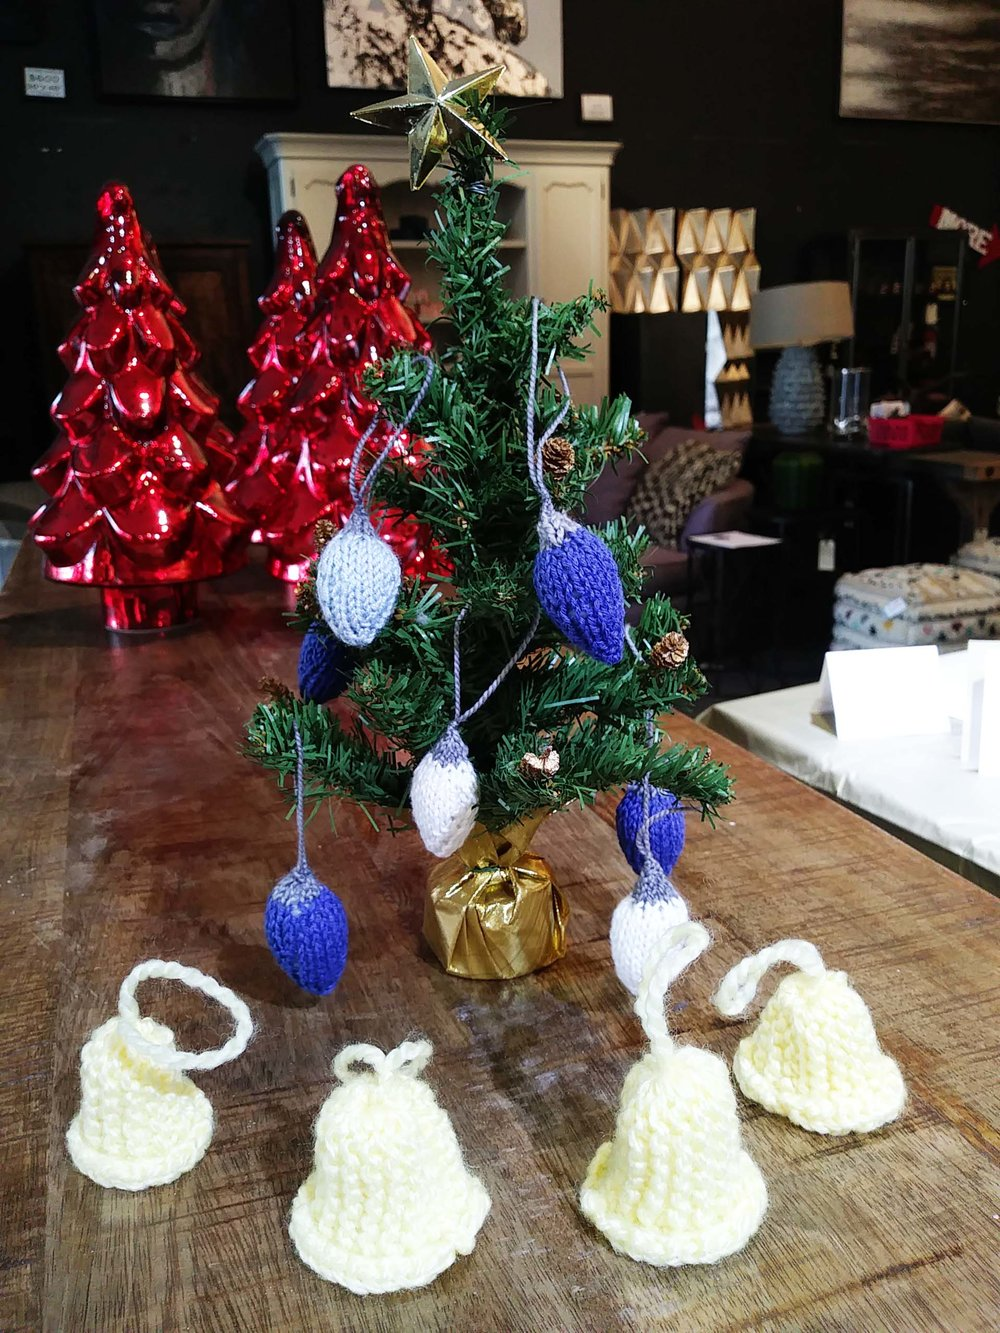 Christmas Light Bulbs - This pattern is great to use up any of your leftover yarn. It works with any size yarn or needles!Cast on 3 stsKfb of each st onto a DPN (6 sts)K round(Kfb, K1) x3 (9 sts)K round(Kfb, K2) x3 (12 sts)K round(Kfb, K3) x3 (15 sts)K round(Kfb, K4) x3 (18 sts)K 3 roundsK2tog all aroundFill light bulb with stuffing. Switch from bulb yarn to plug yarn.K 3 roundsK3tog all aroundK3tog and tie knotTie yarn into a look to hand the light from. Sew in ends.